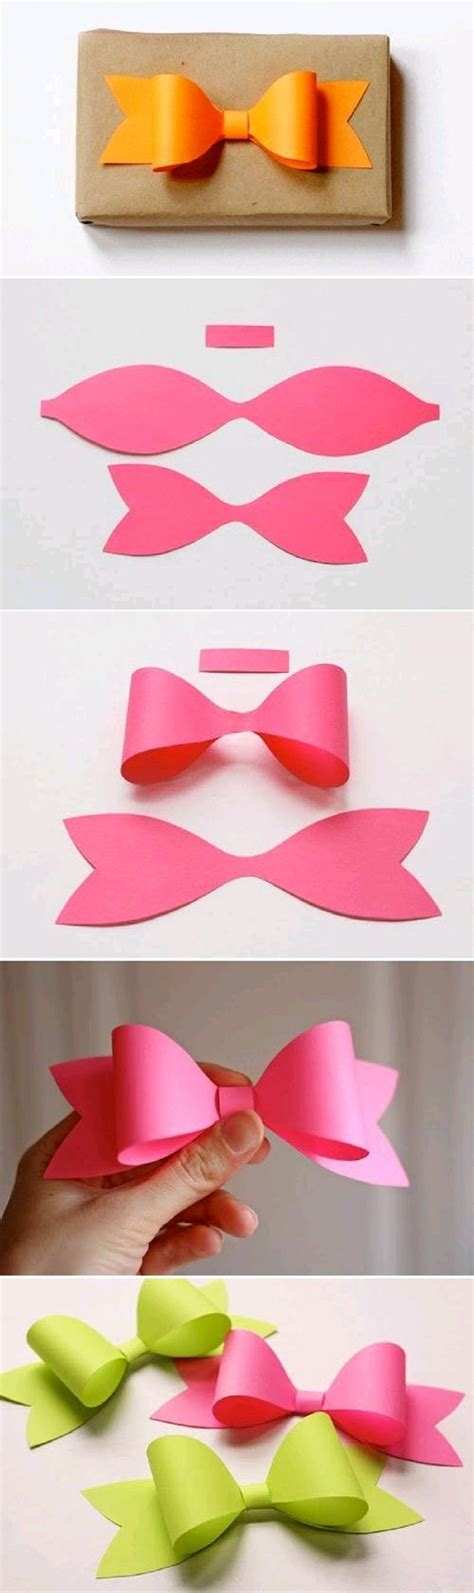 Paper Foam Crafts - color and creativity crafts made from foam paper the